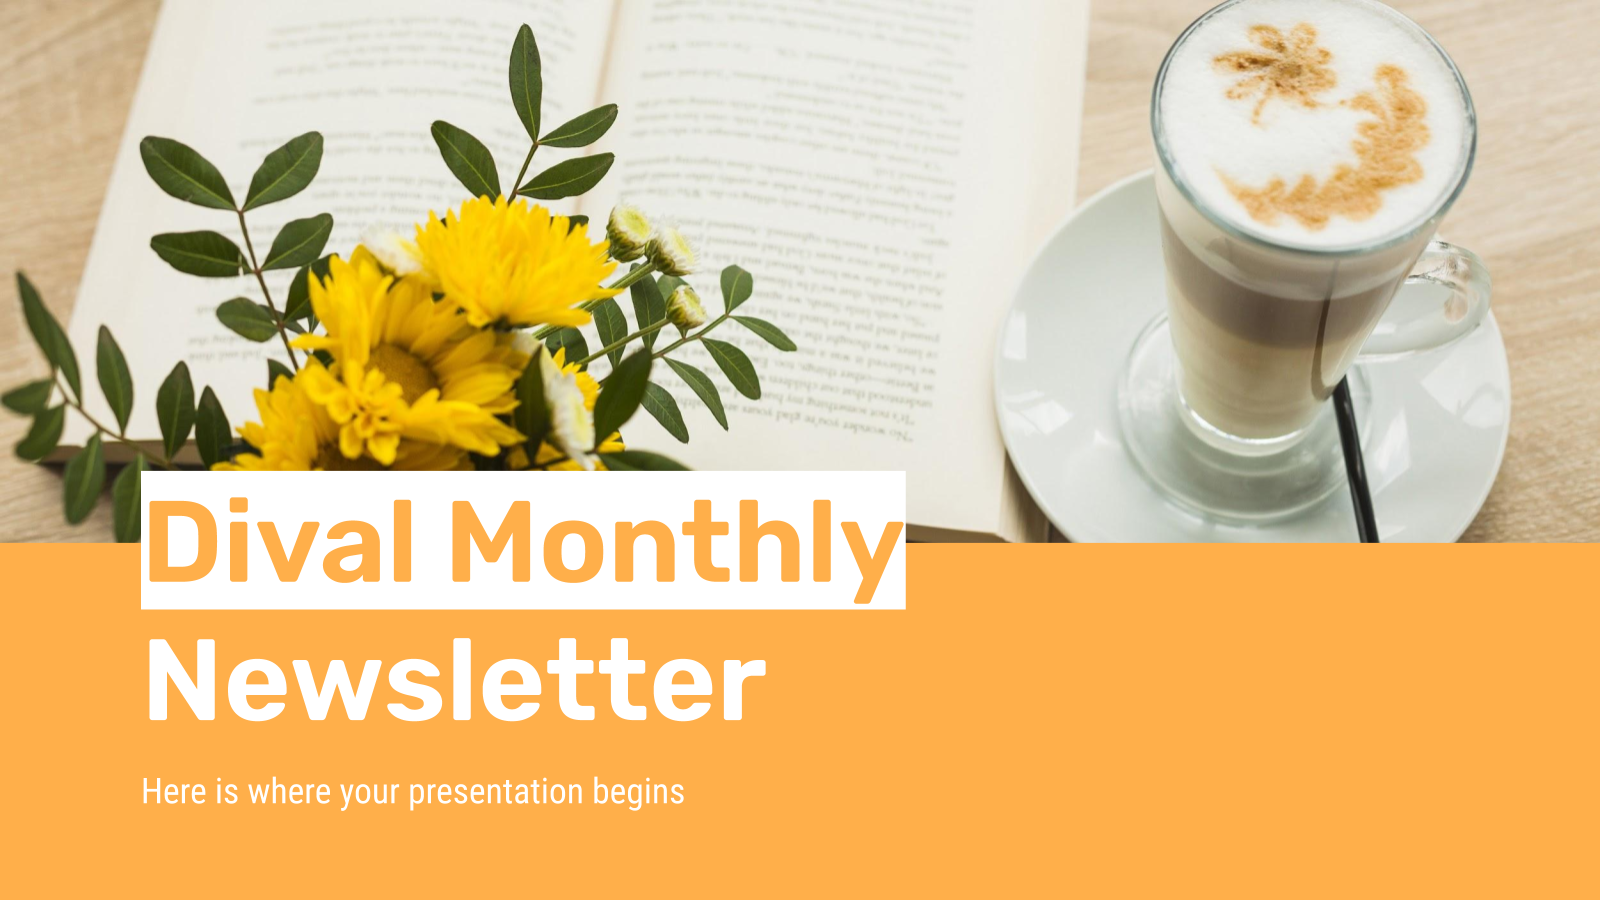 Dival Monthly Newsletter presentation template